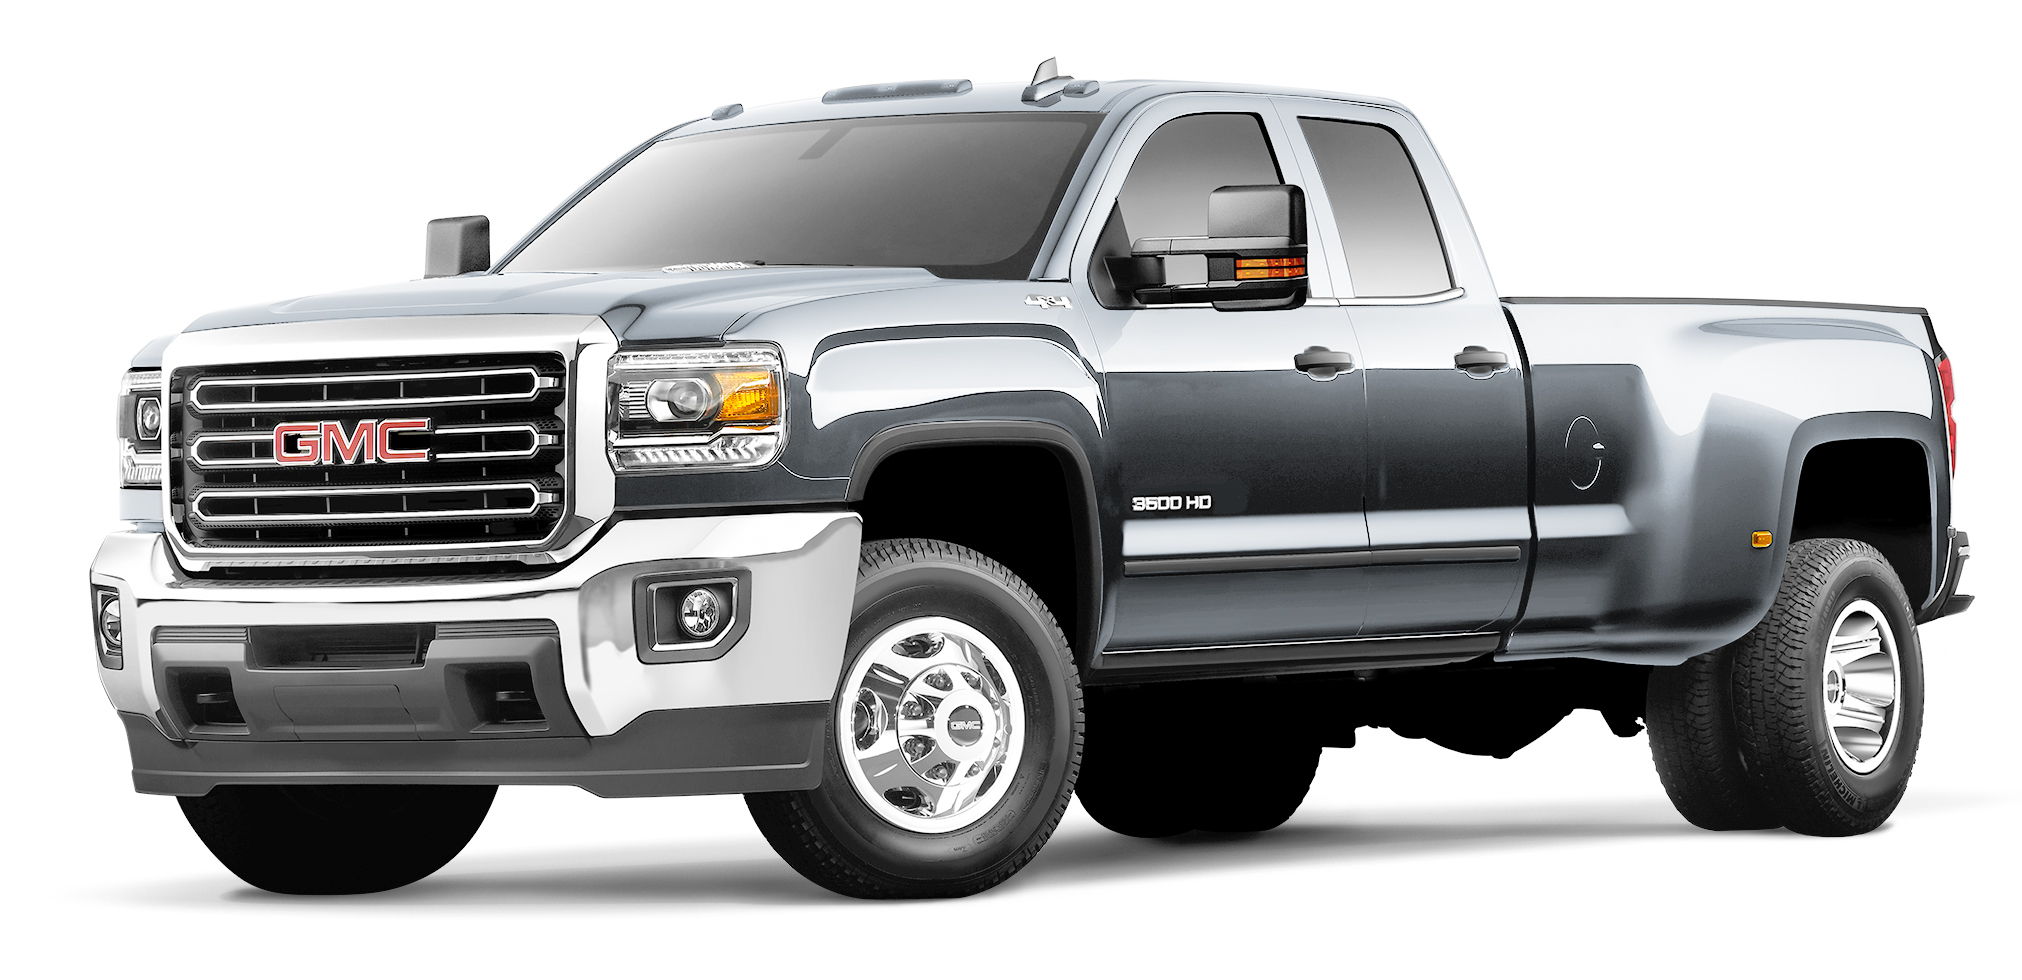 GMC Sierra 3500 HD Quicksilver